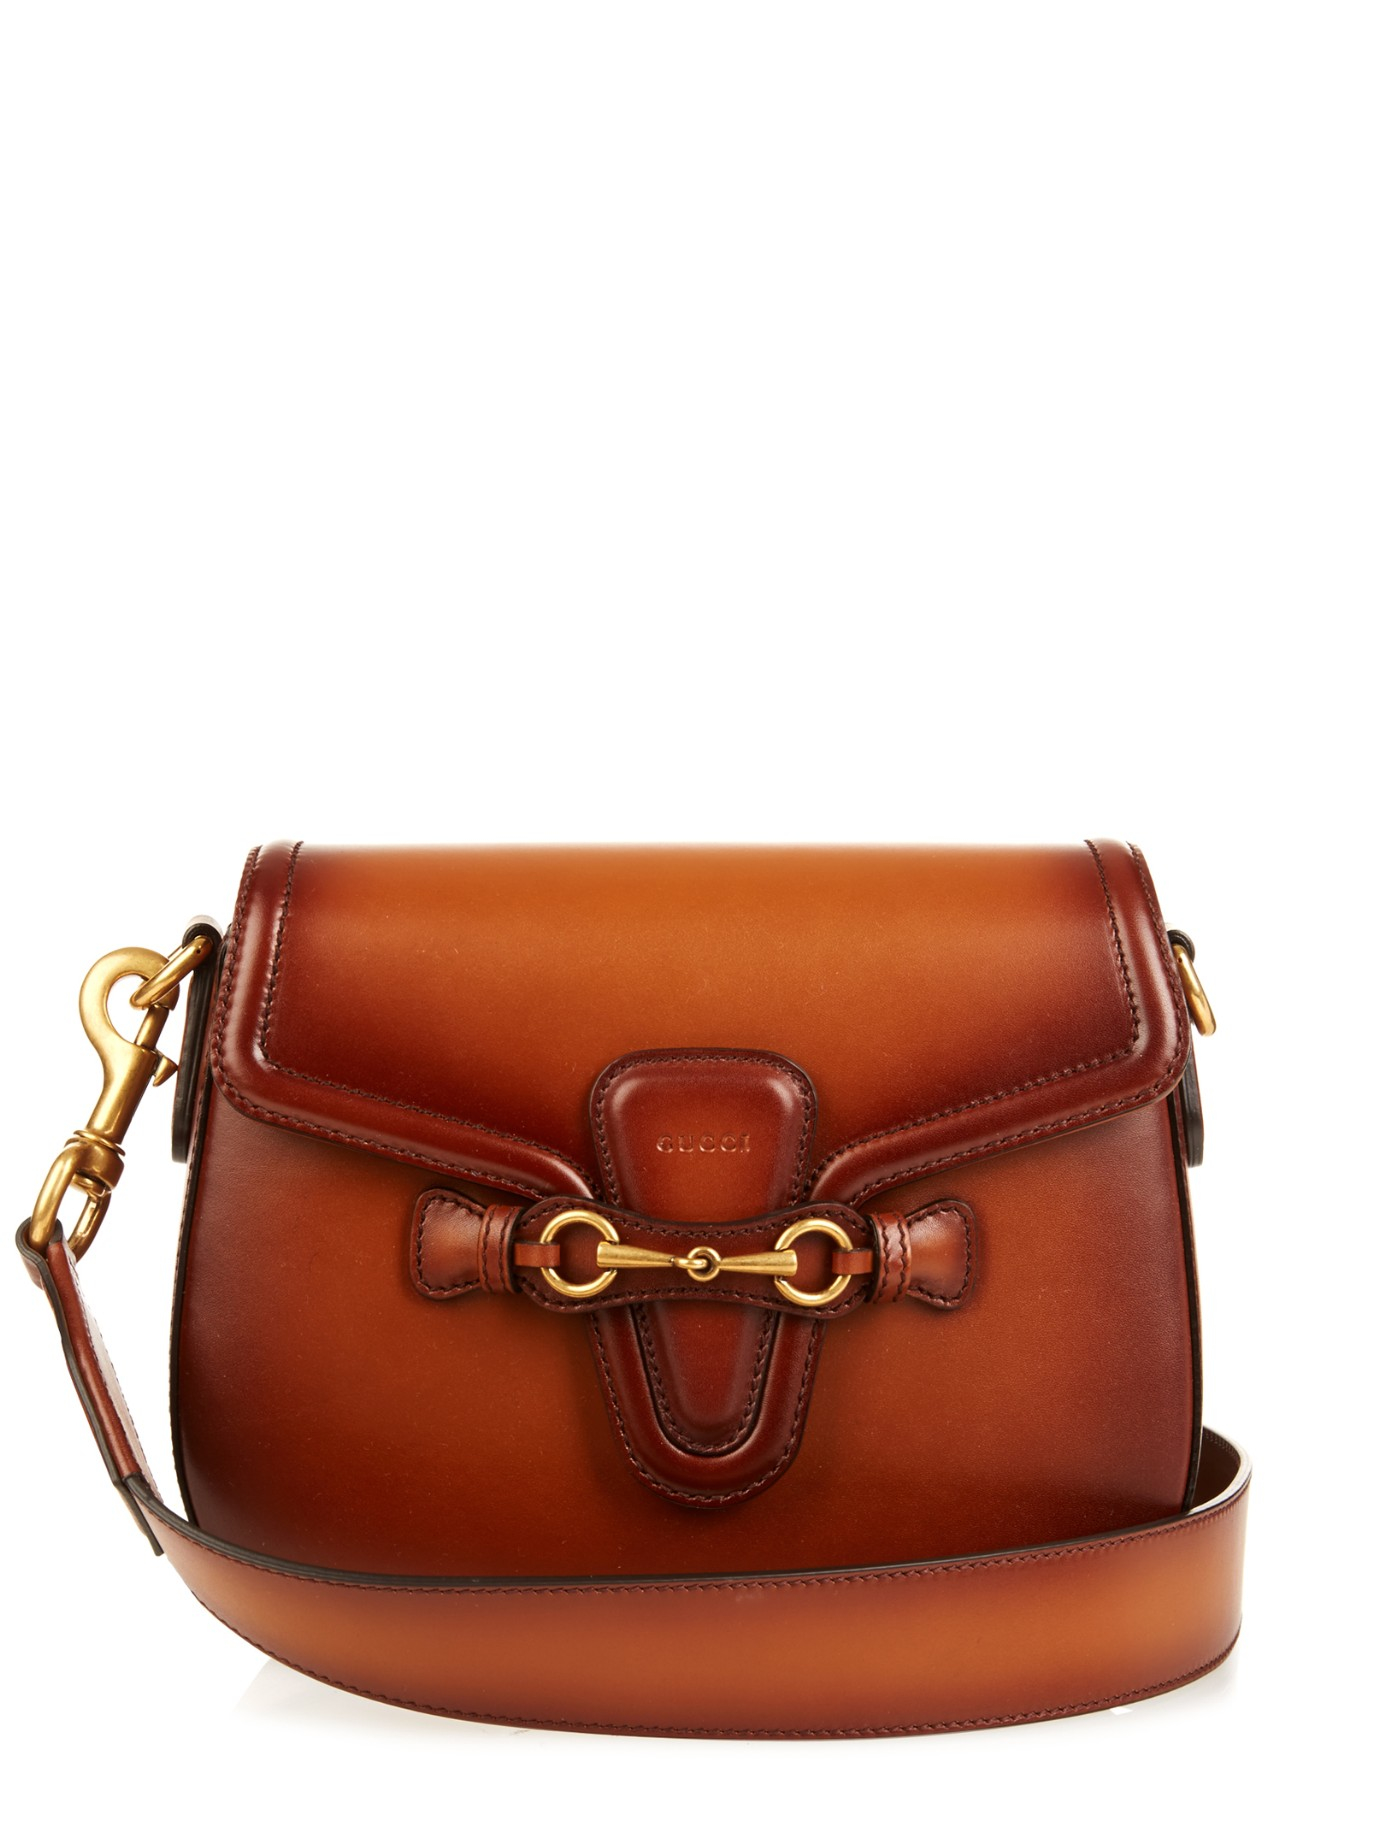 2a1d7e28dc81 Lyst - Gucci Lady Web Medium Leather Shoulder Bag in Brown